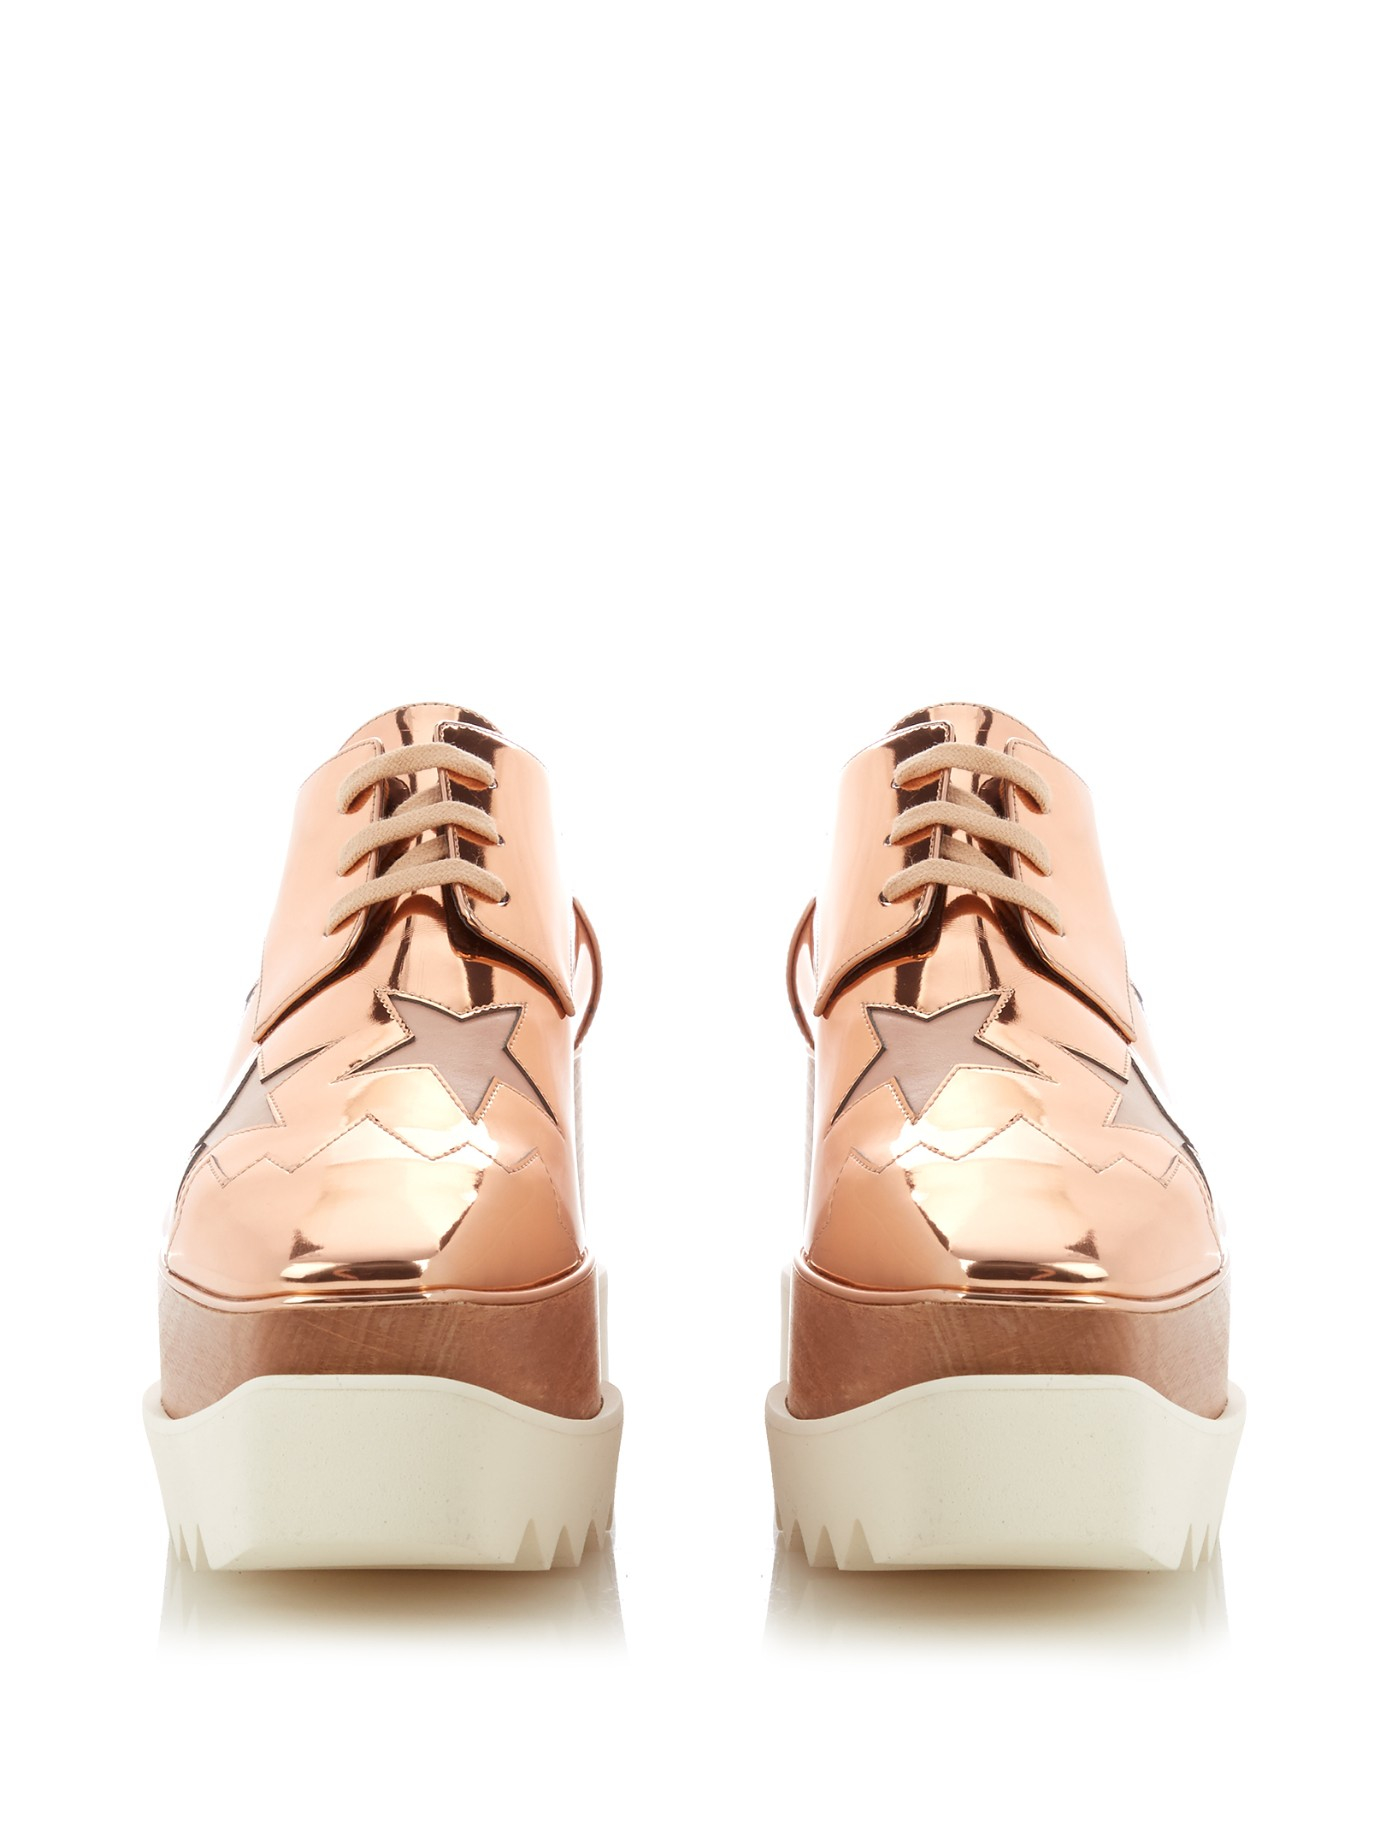 ea3ad459892 Stella McCartney Elyse Faux-Leather Platform Shoes in Pink - Lyst